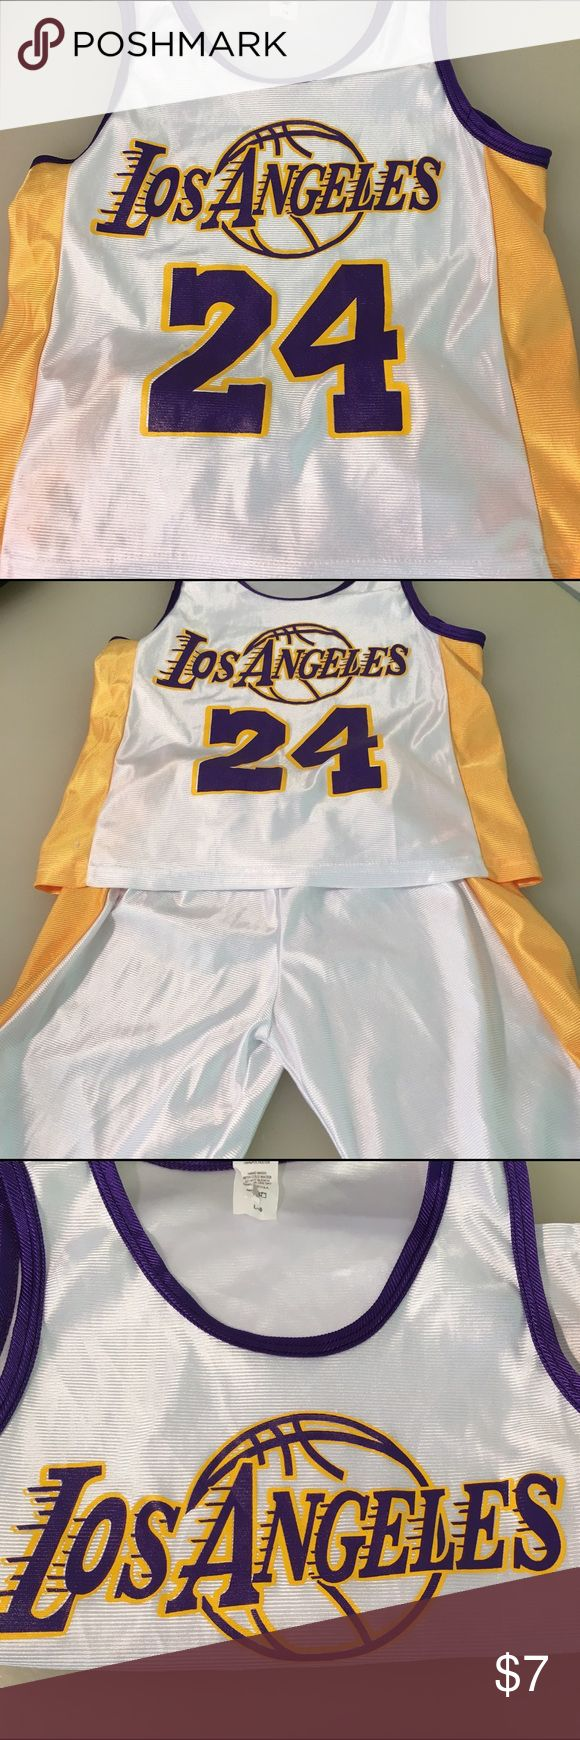 Boys Los Angeles Laker Kobe Bryant uniform There's always next year Laker fans but don't despair this adorable boys large 8 uniform with number 24 Kobe Bryant might help you get through the pain! Matching Sets